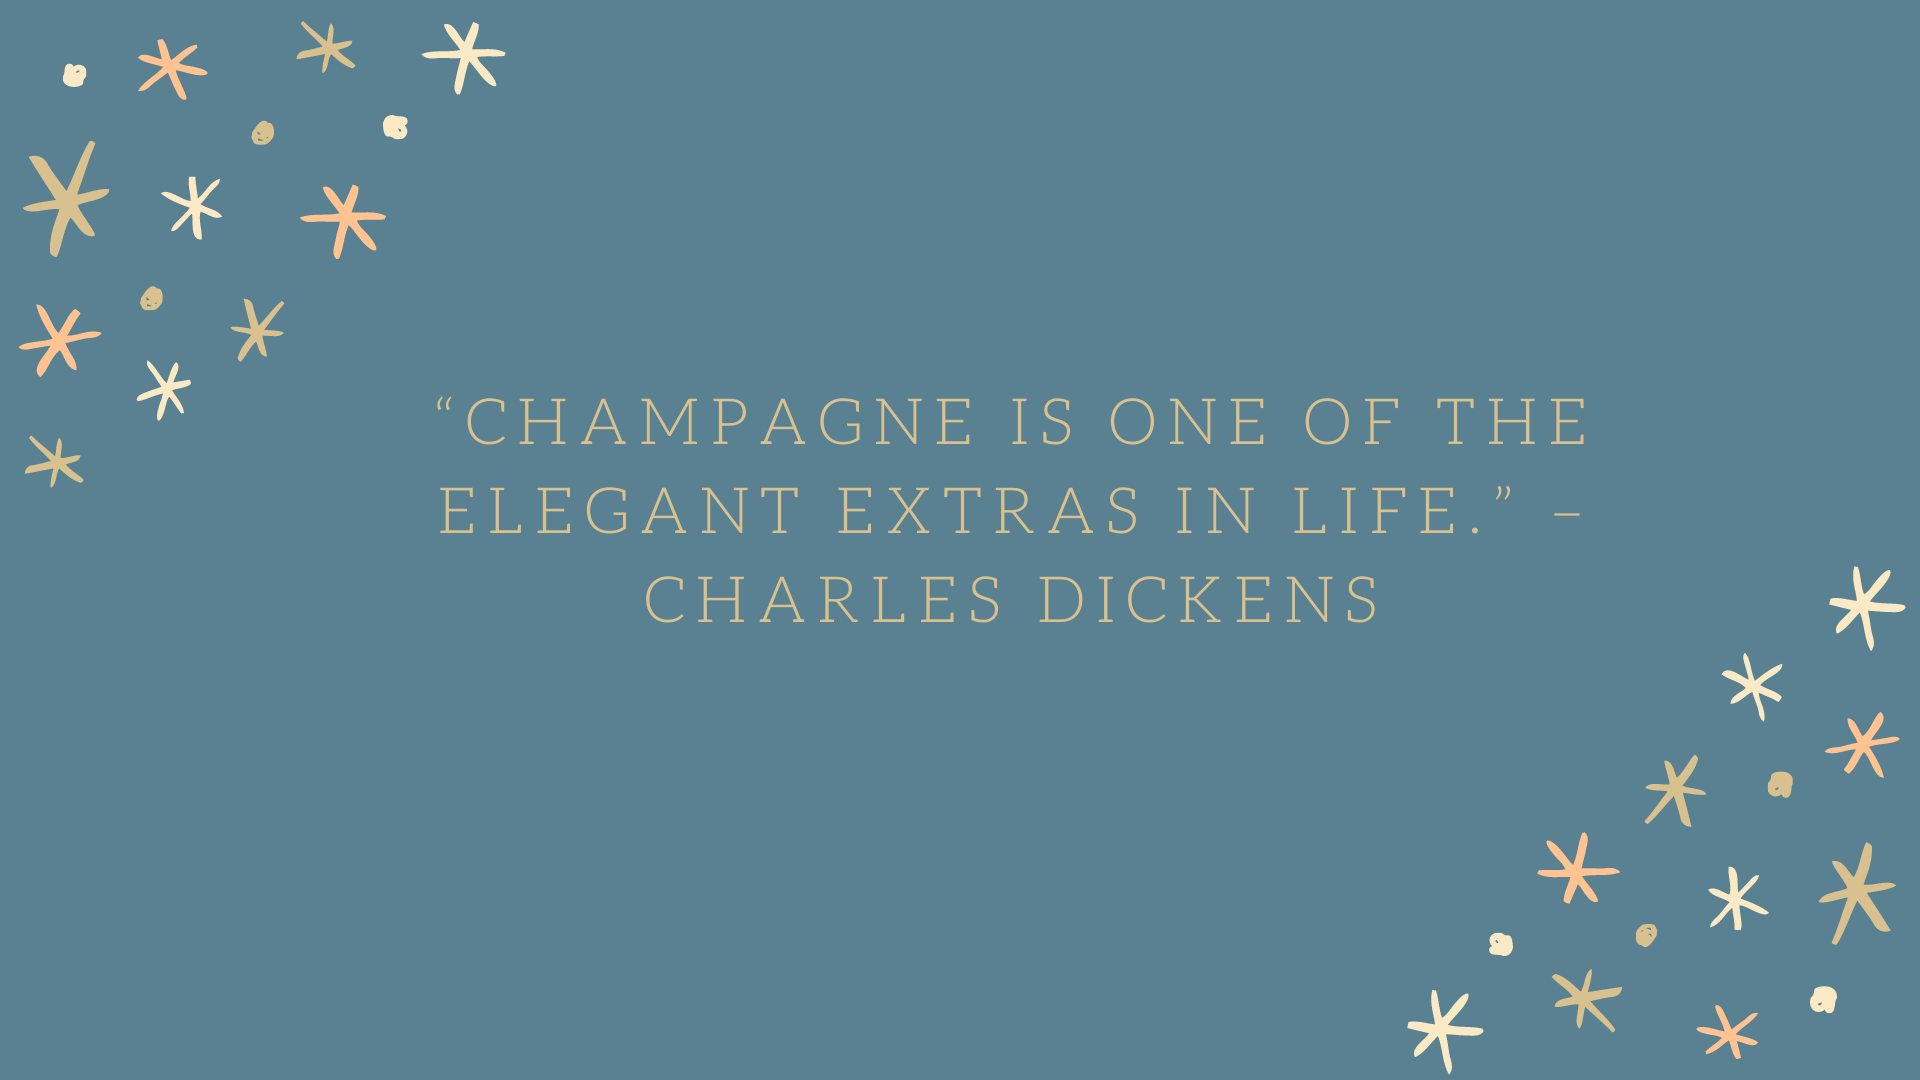 """Champagne is one of the elegant extras in life."" –Charles Dickens"